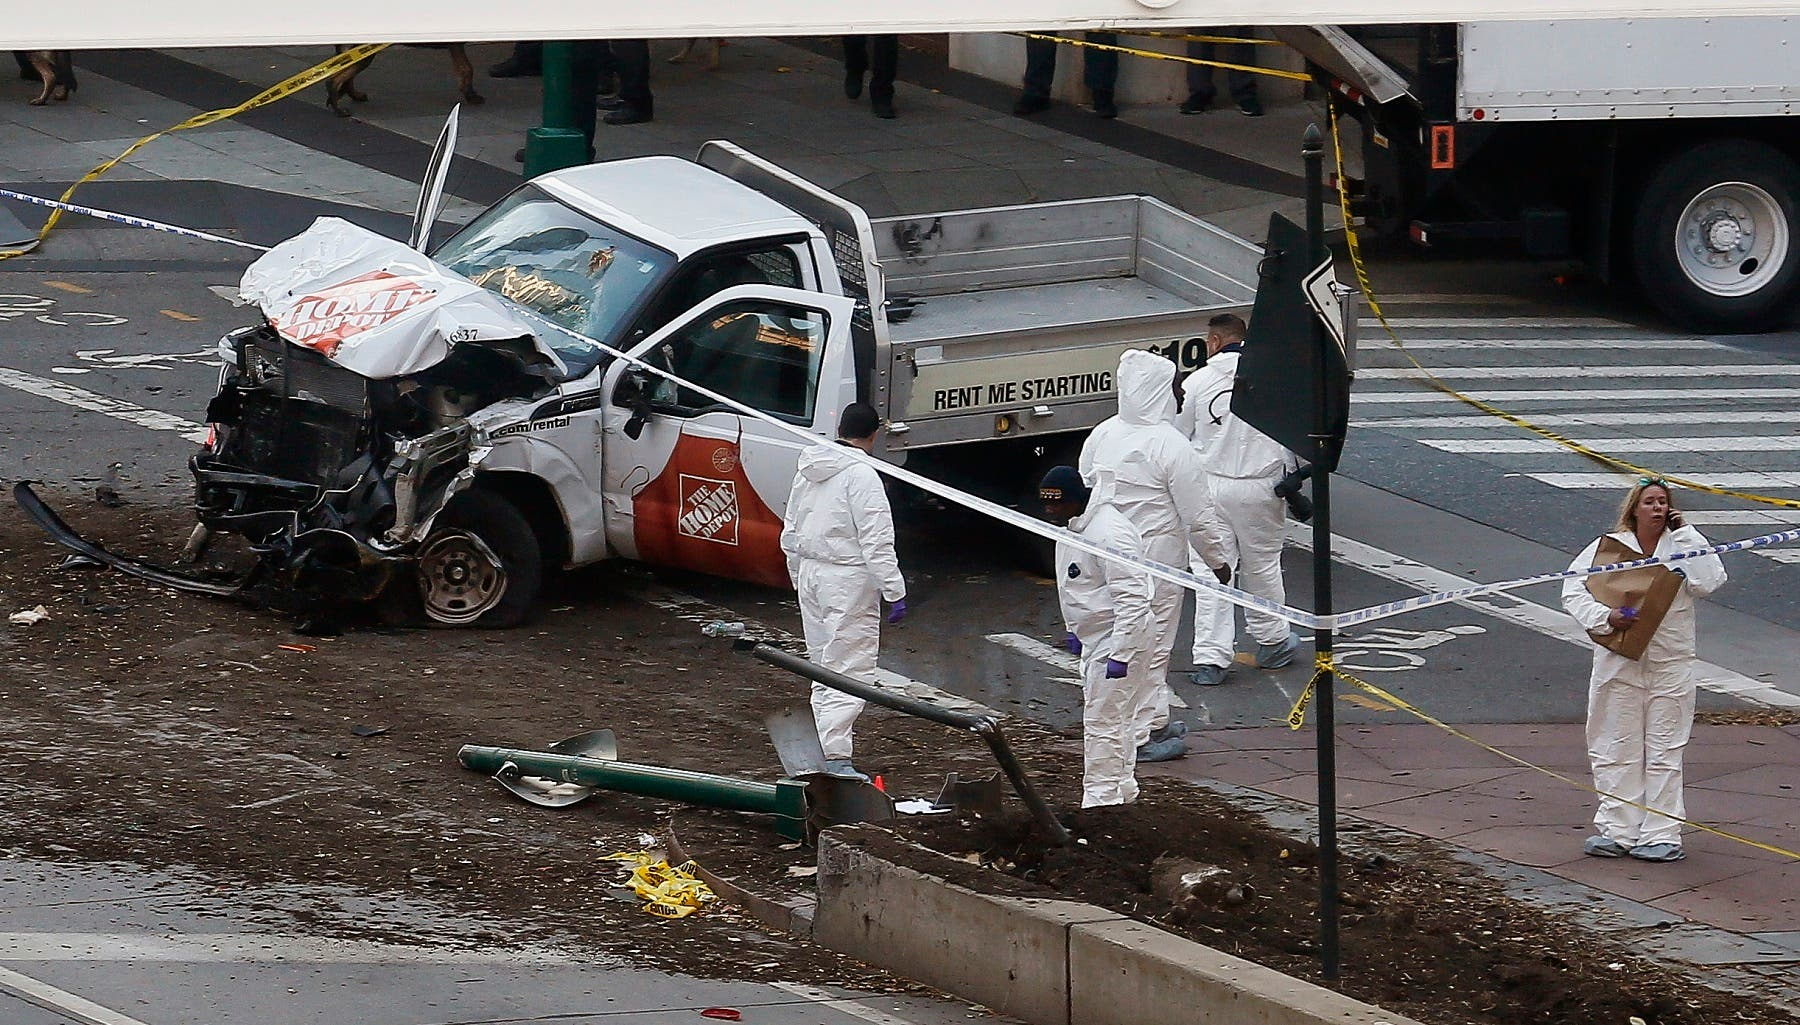 Authorities stand near a damaged Home Depot truck after a motorist drove onto a bike path near the World Trade Center memorial, striking and killing several people Tuesday. (AP)